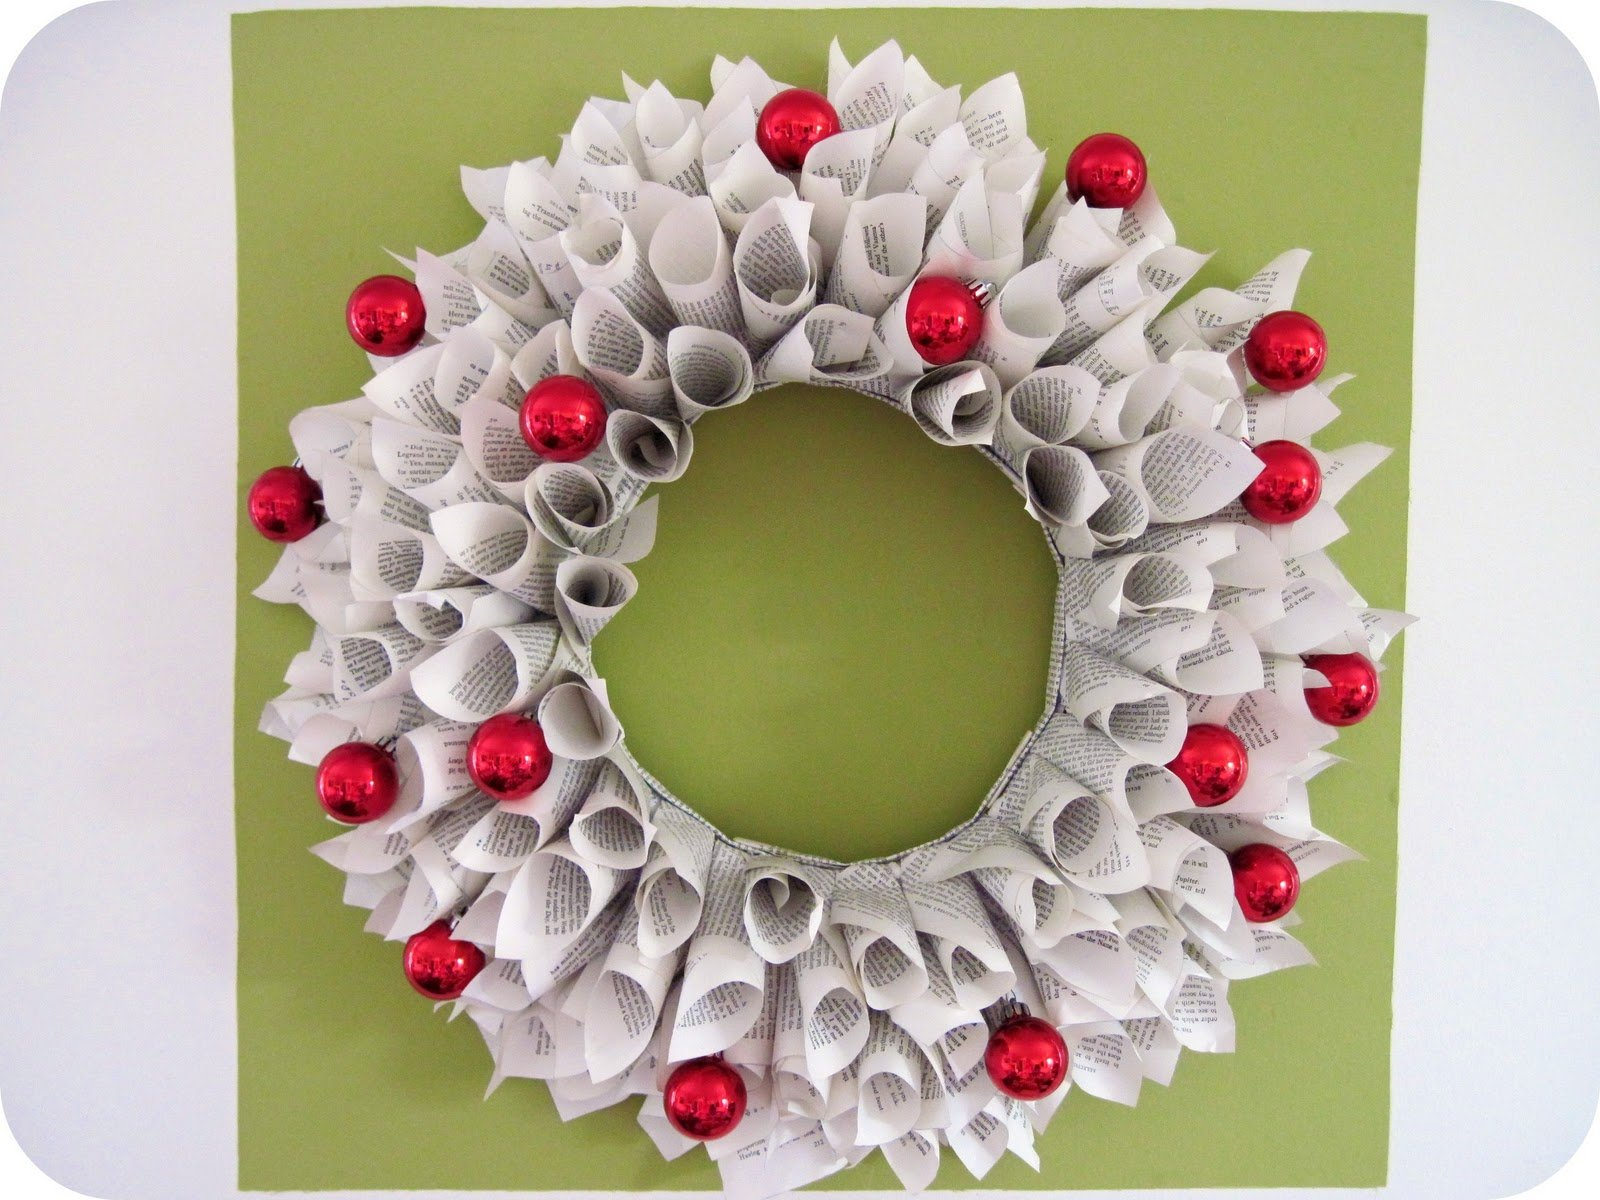 decorations-christmas-accessories-breathtaking-christmas-hanging-wall-decorations-with-white-paper-cutting-art-wreath-crafts-and-combine-red-color-ball-ornaments-christmas-decorating-amazing-ideas